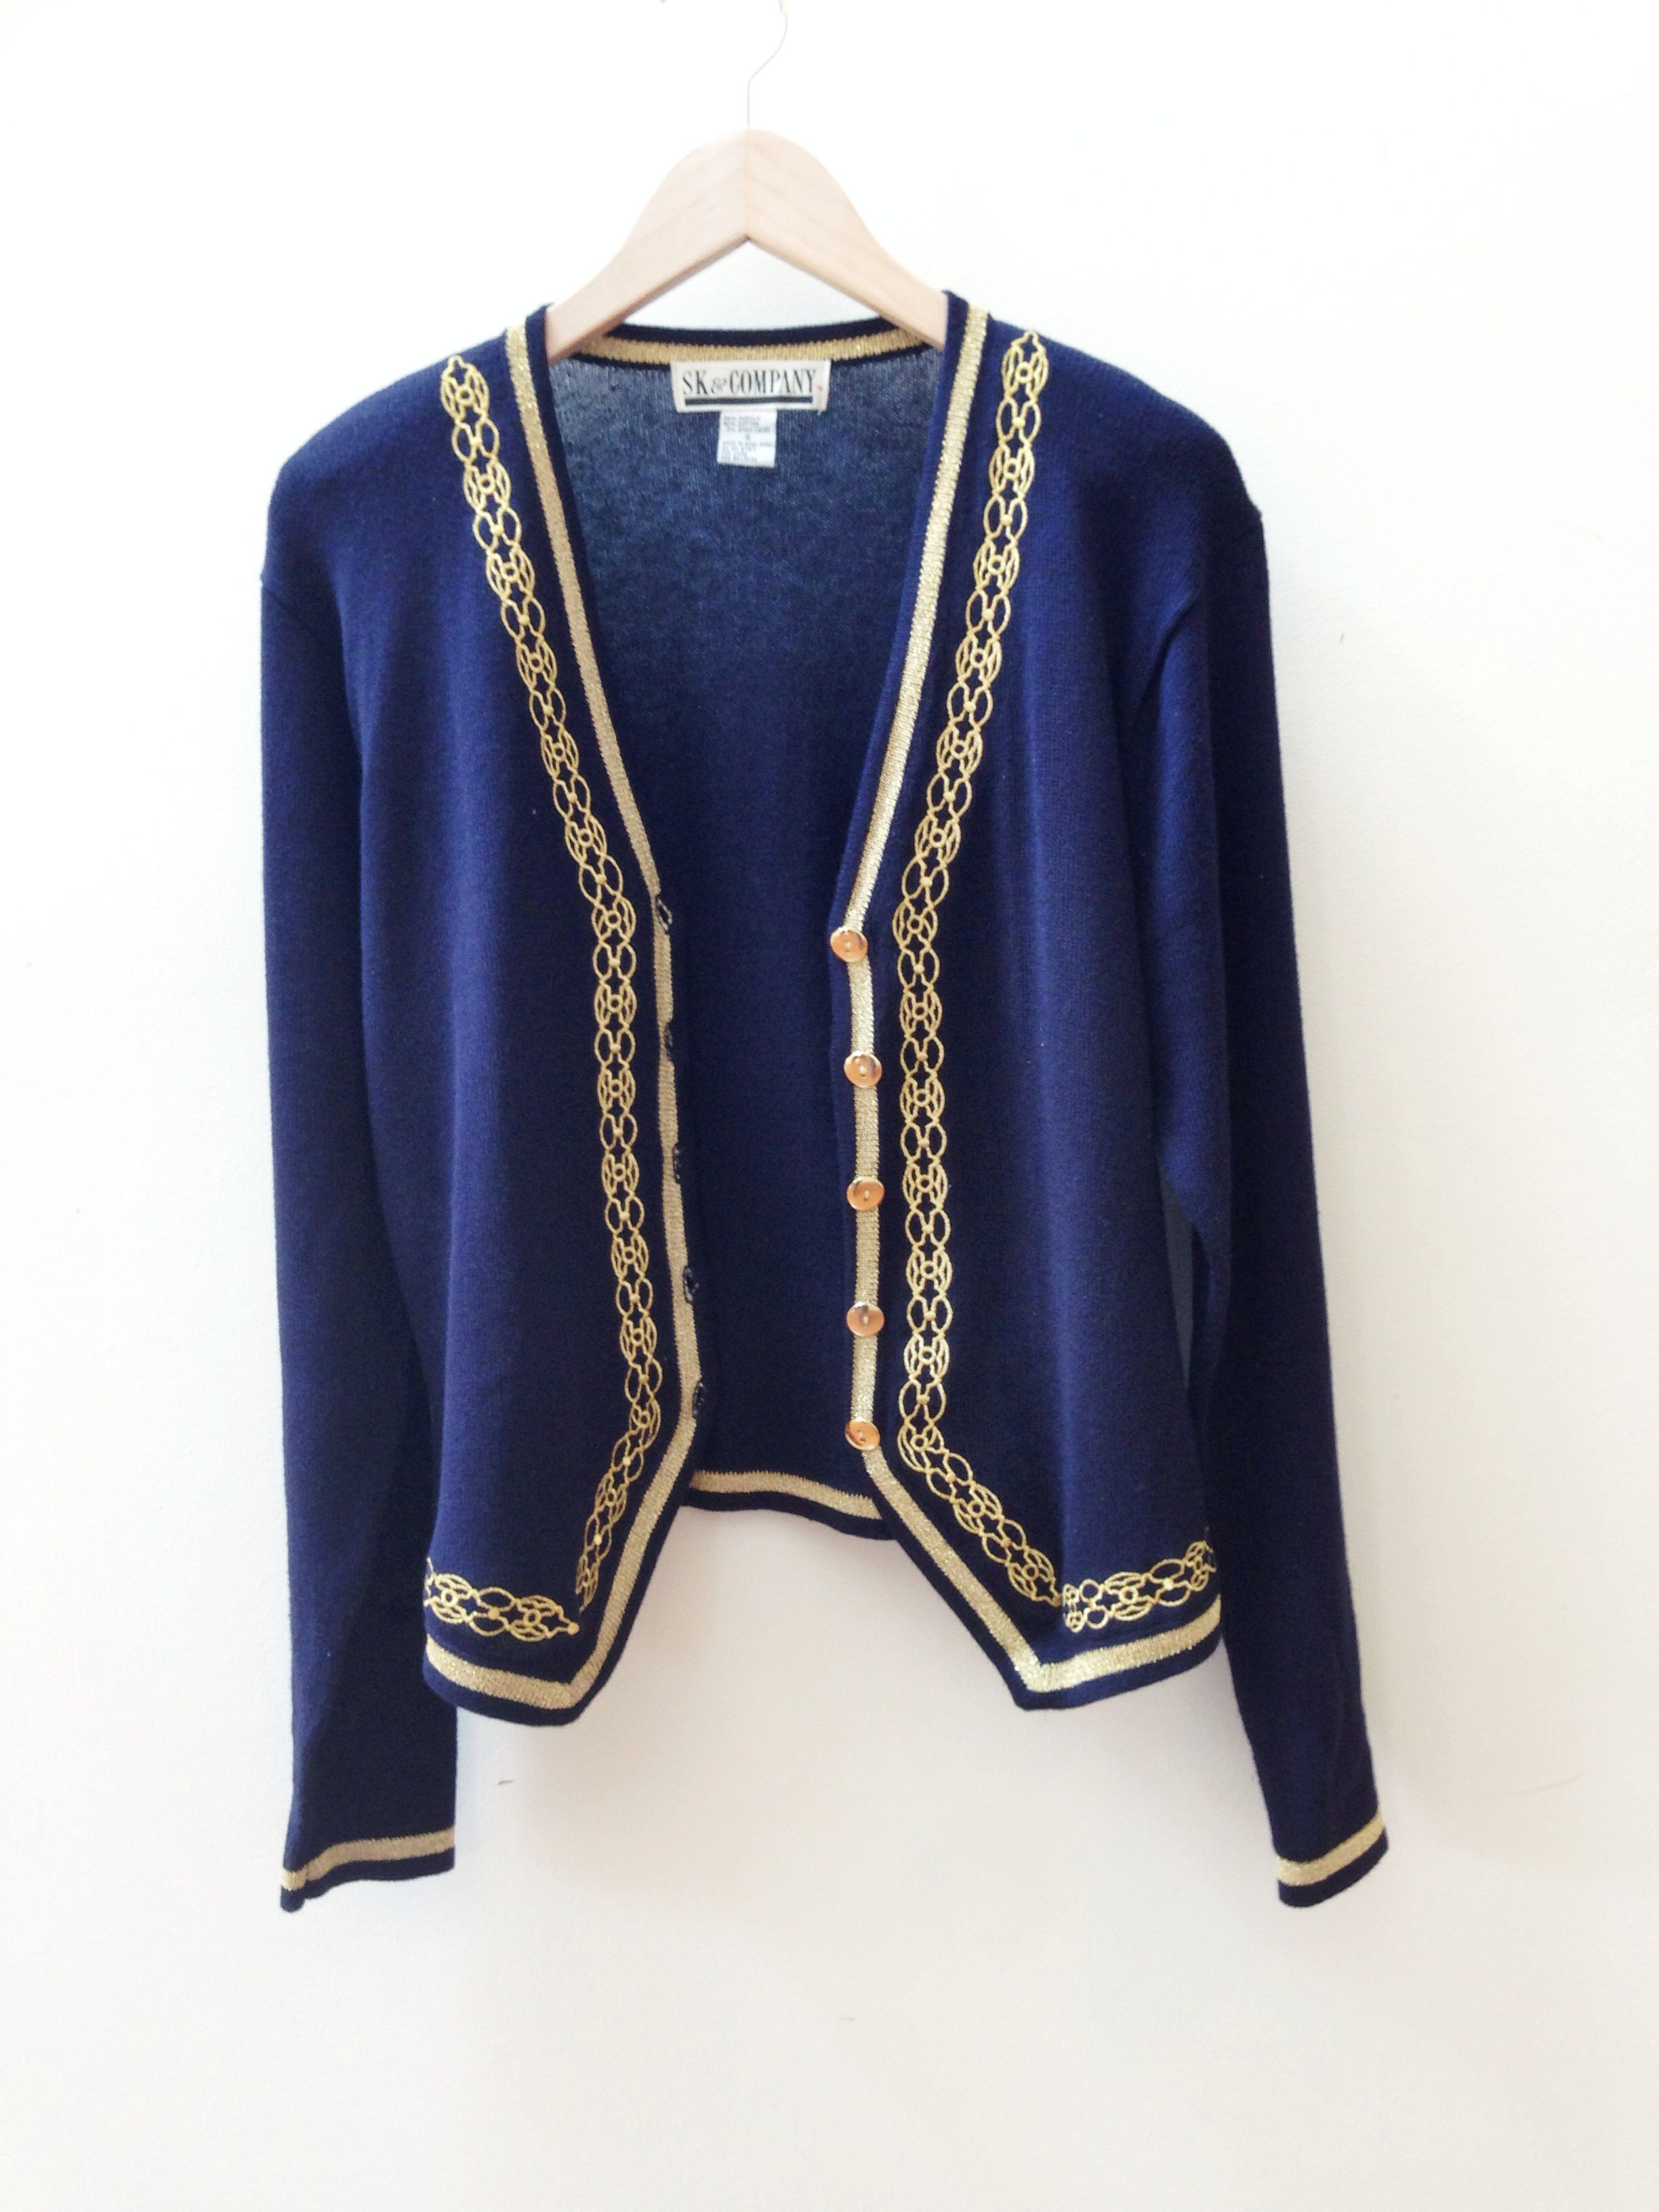 Gold embroidered navy blue sweater unbuttoned | Awesome Finds ...